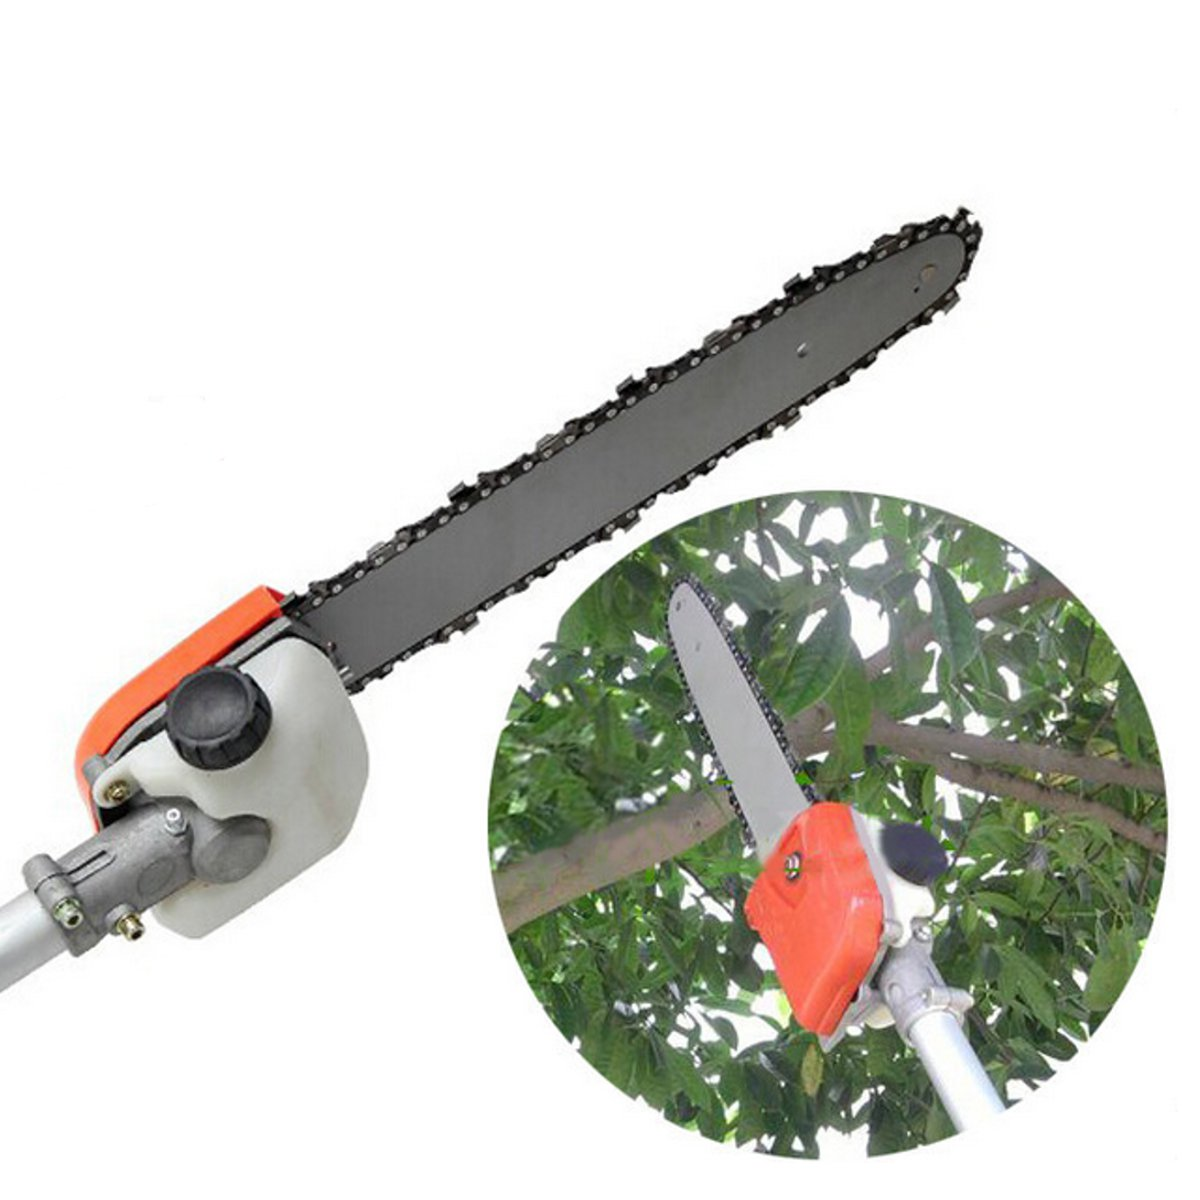 28mm 9 Gears Pole Saw Chainsaw Gear Head Gearbox for Stihl Trimmer